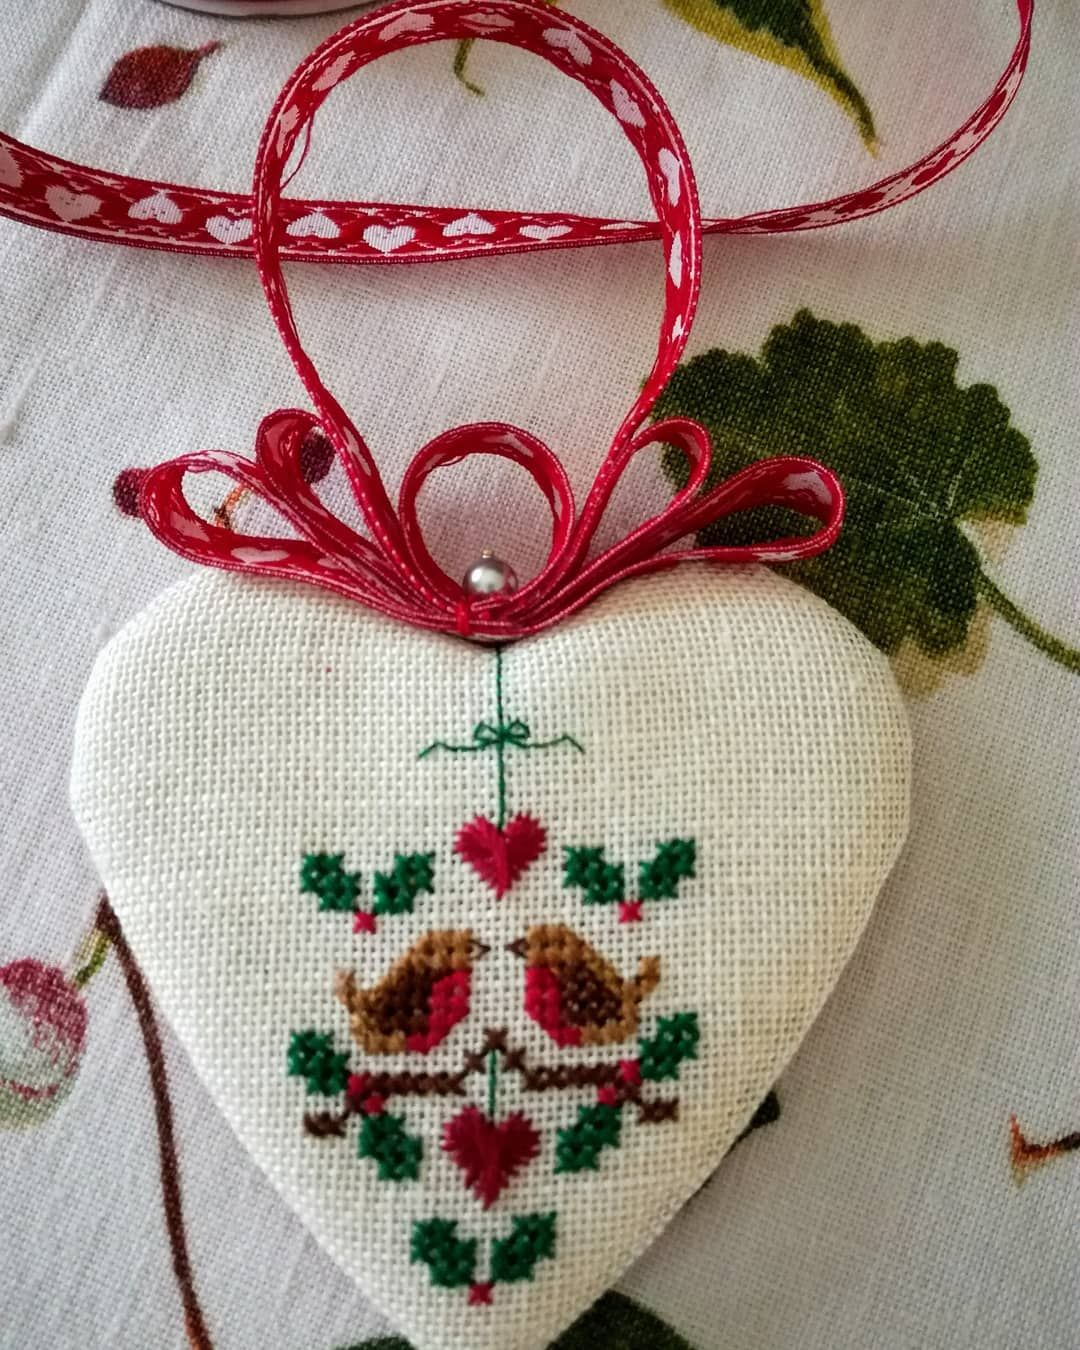 "Rosella Caputo on Instagram: ""Two Calling Birds by #janiehubbledesigns #crossstitchersofinstagram #christmasornaments"""